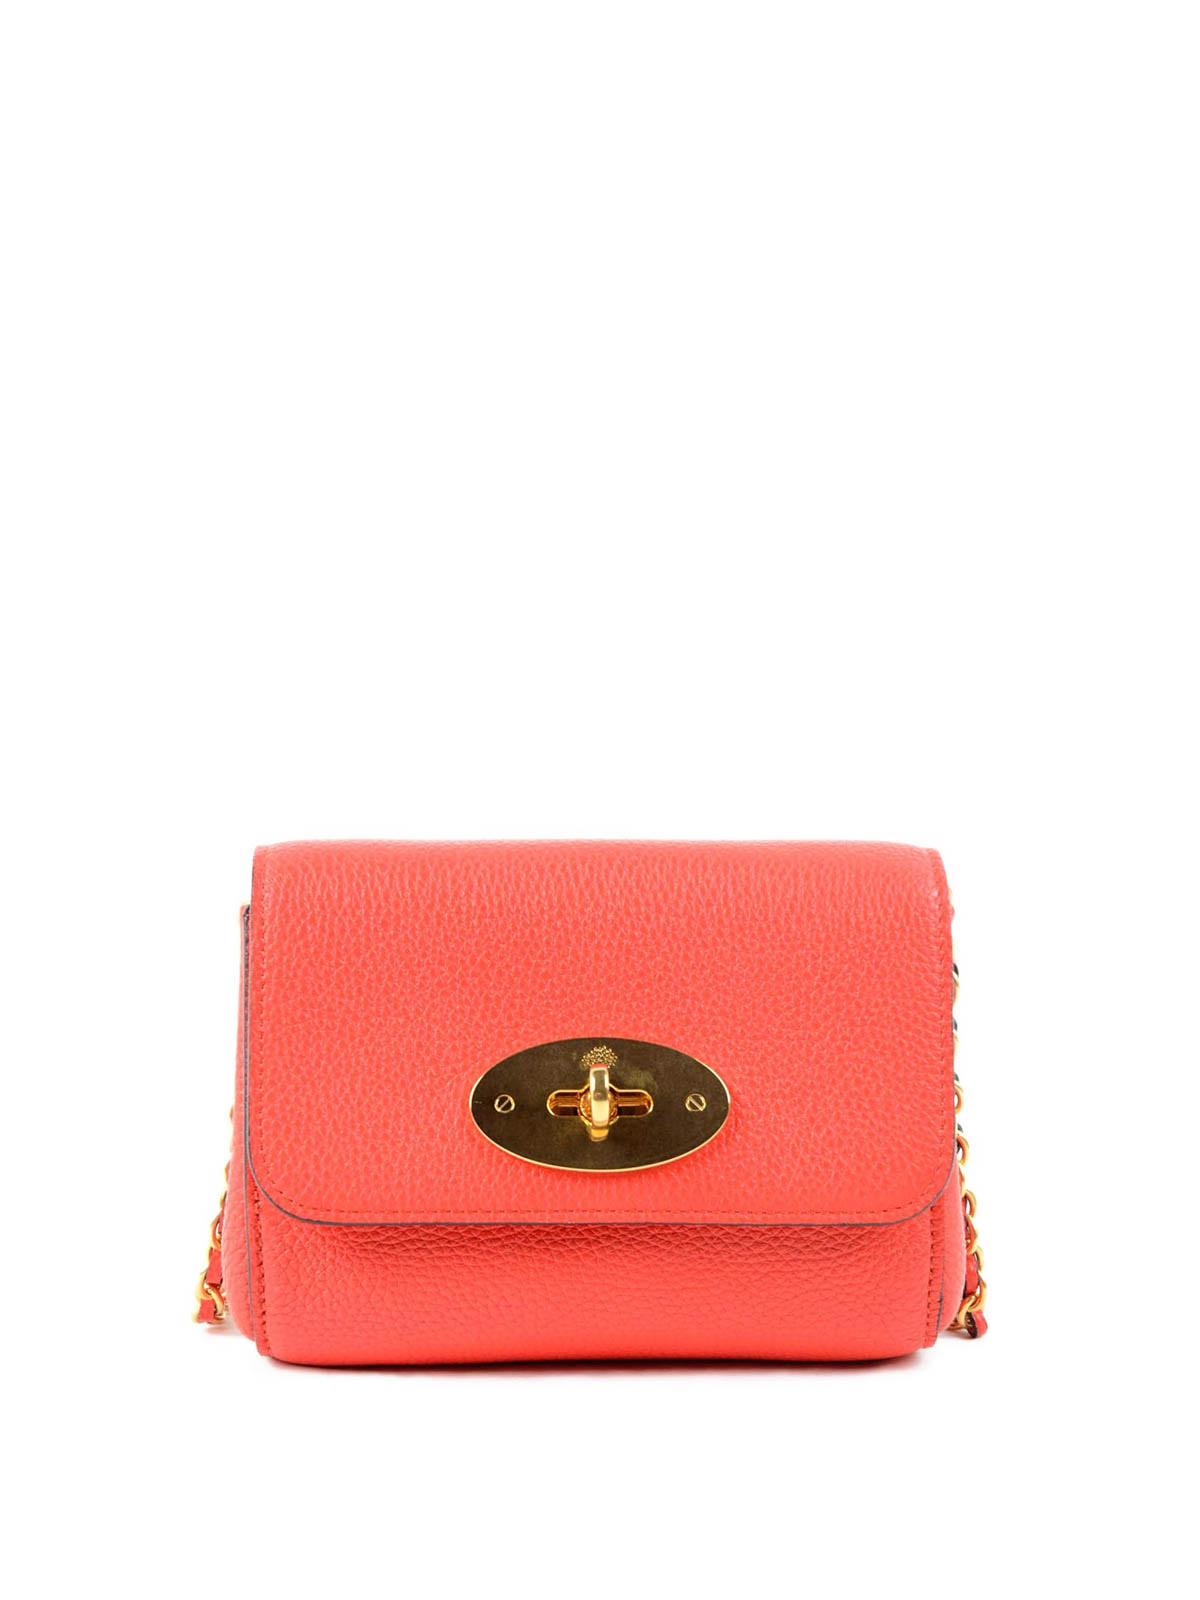 Mulberry - Lily leather mini crossbody bag - cross body bags ... 8a8fade386be6